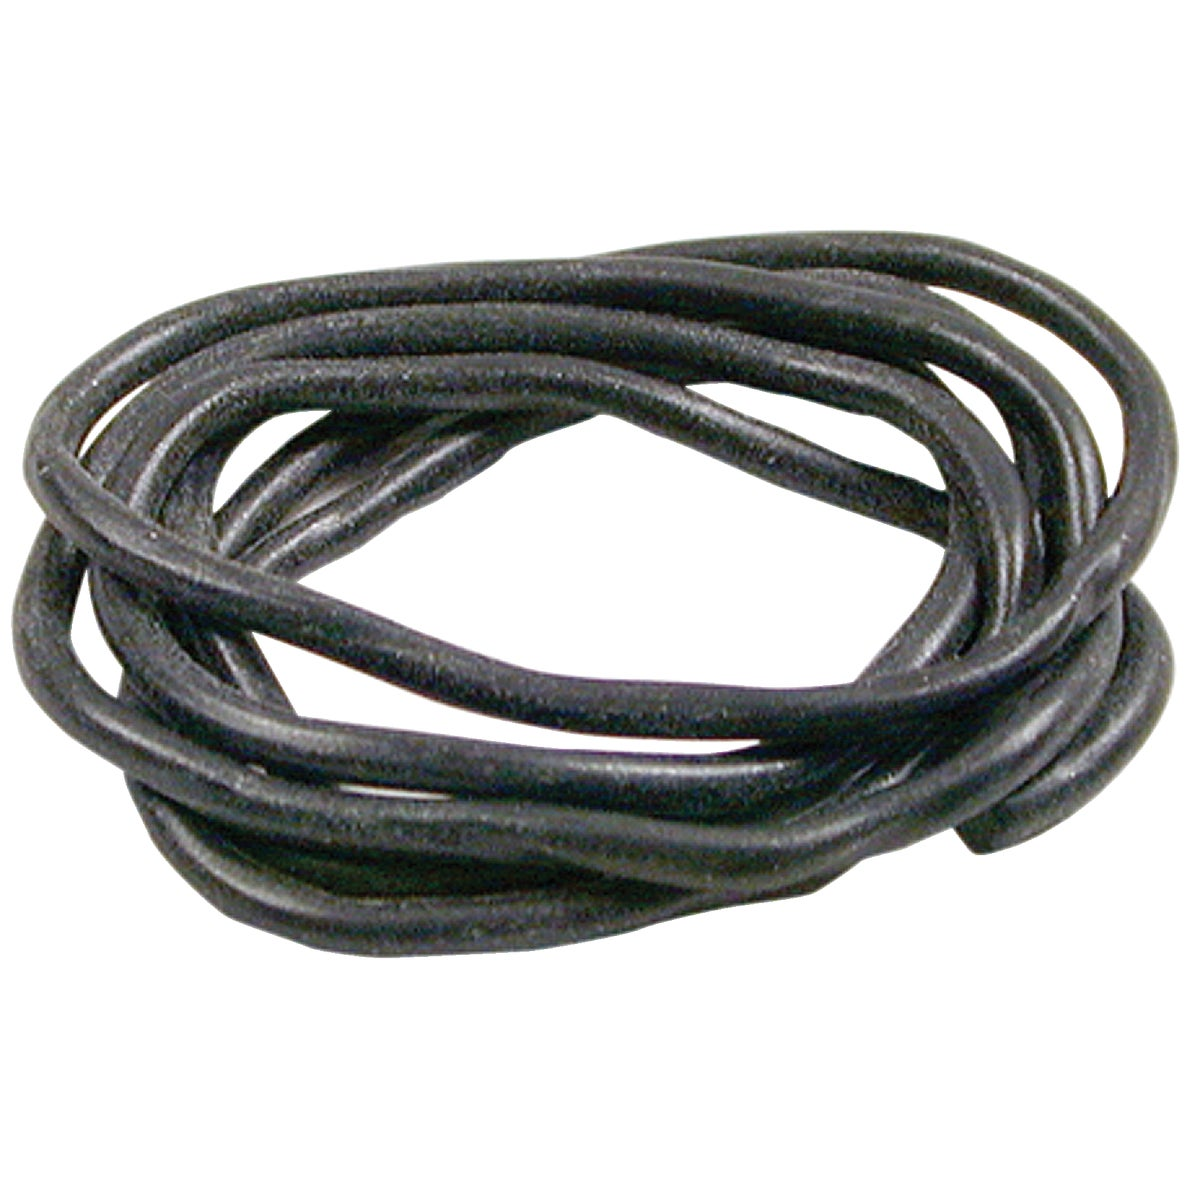 Danco Perfect Match GRAPHITE PACKING 80793